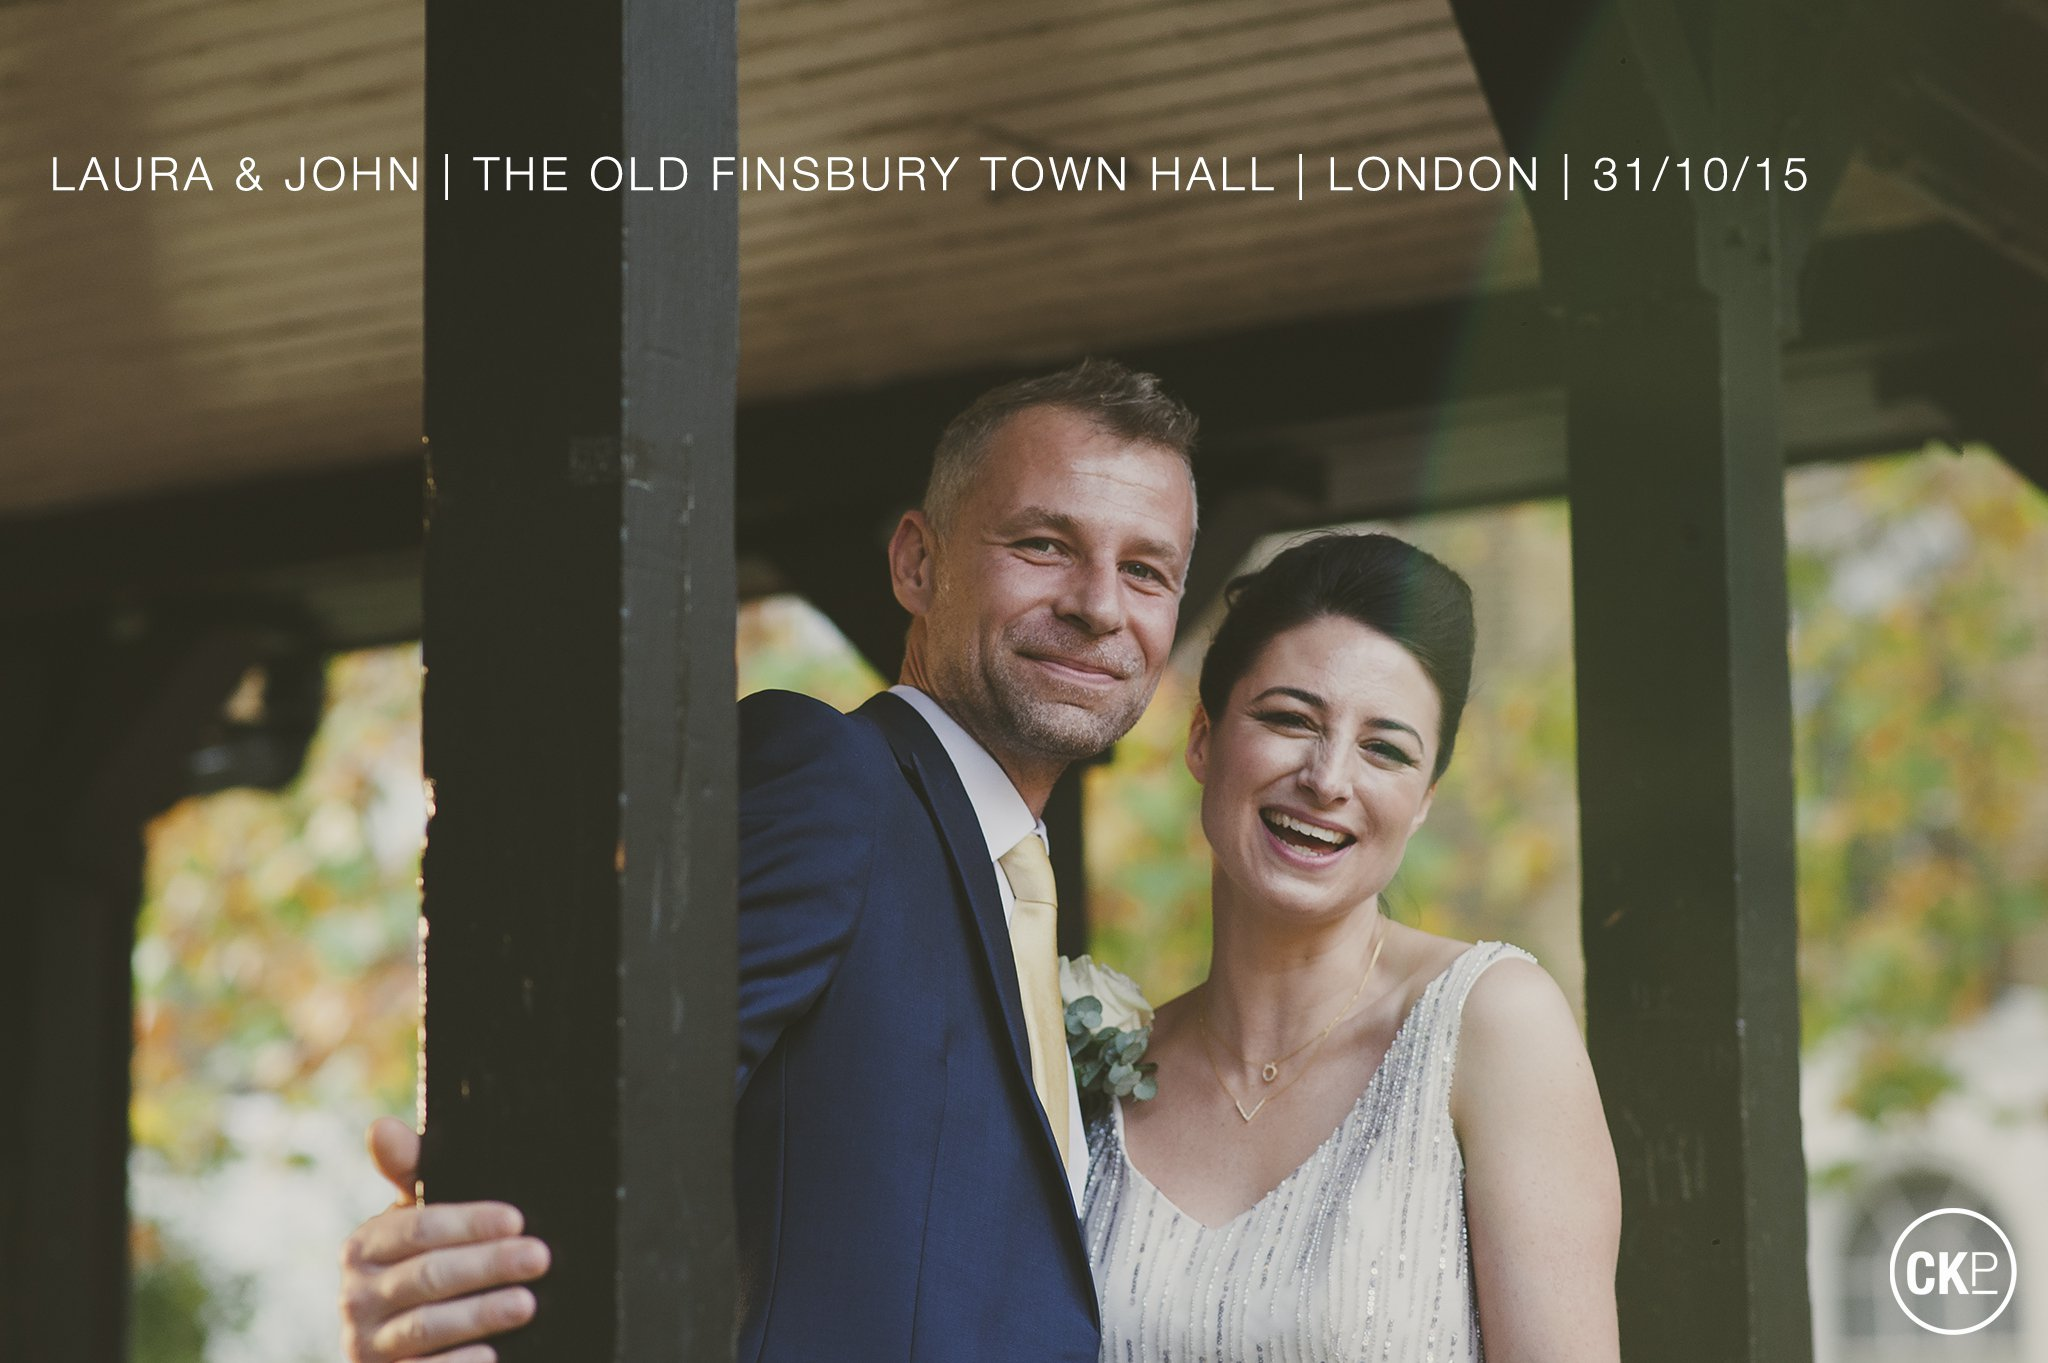 Finsbury Town Hall London Wedding Photography Copyright Charlotte Knee Photography_0001.jpg